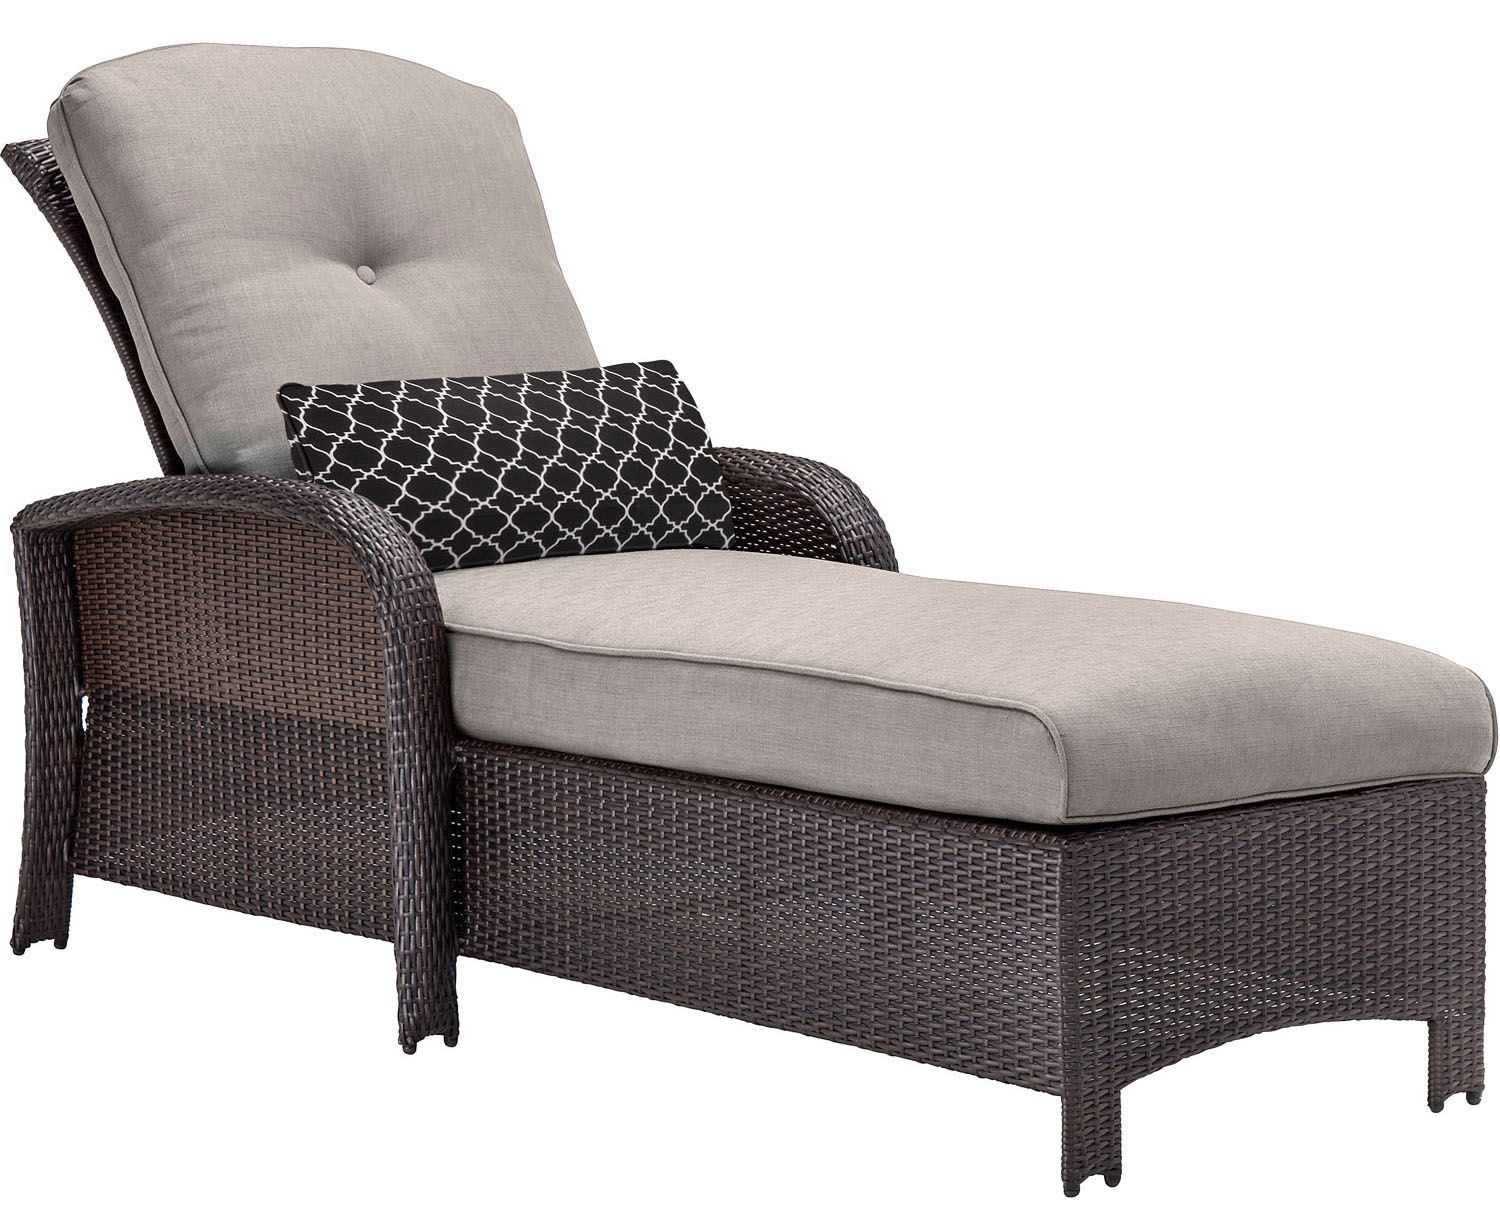 Anover Strathmere Chaise Lounge Chair Strathchsslv